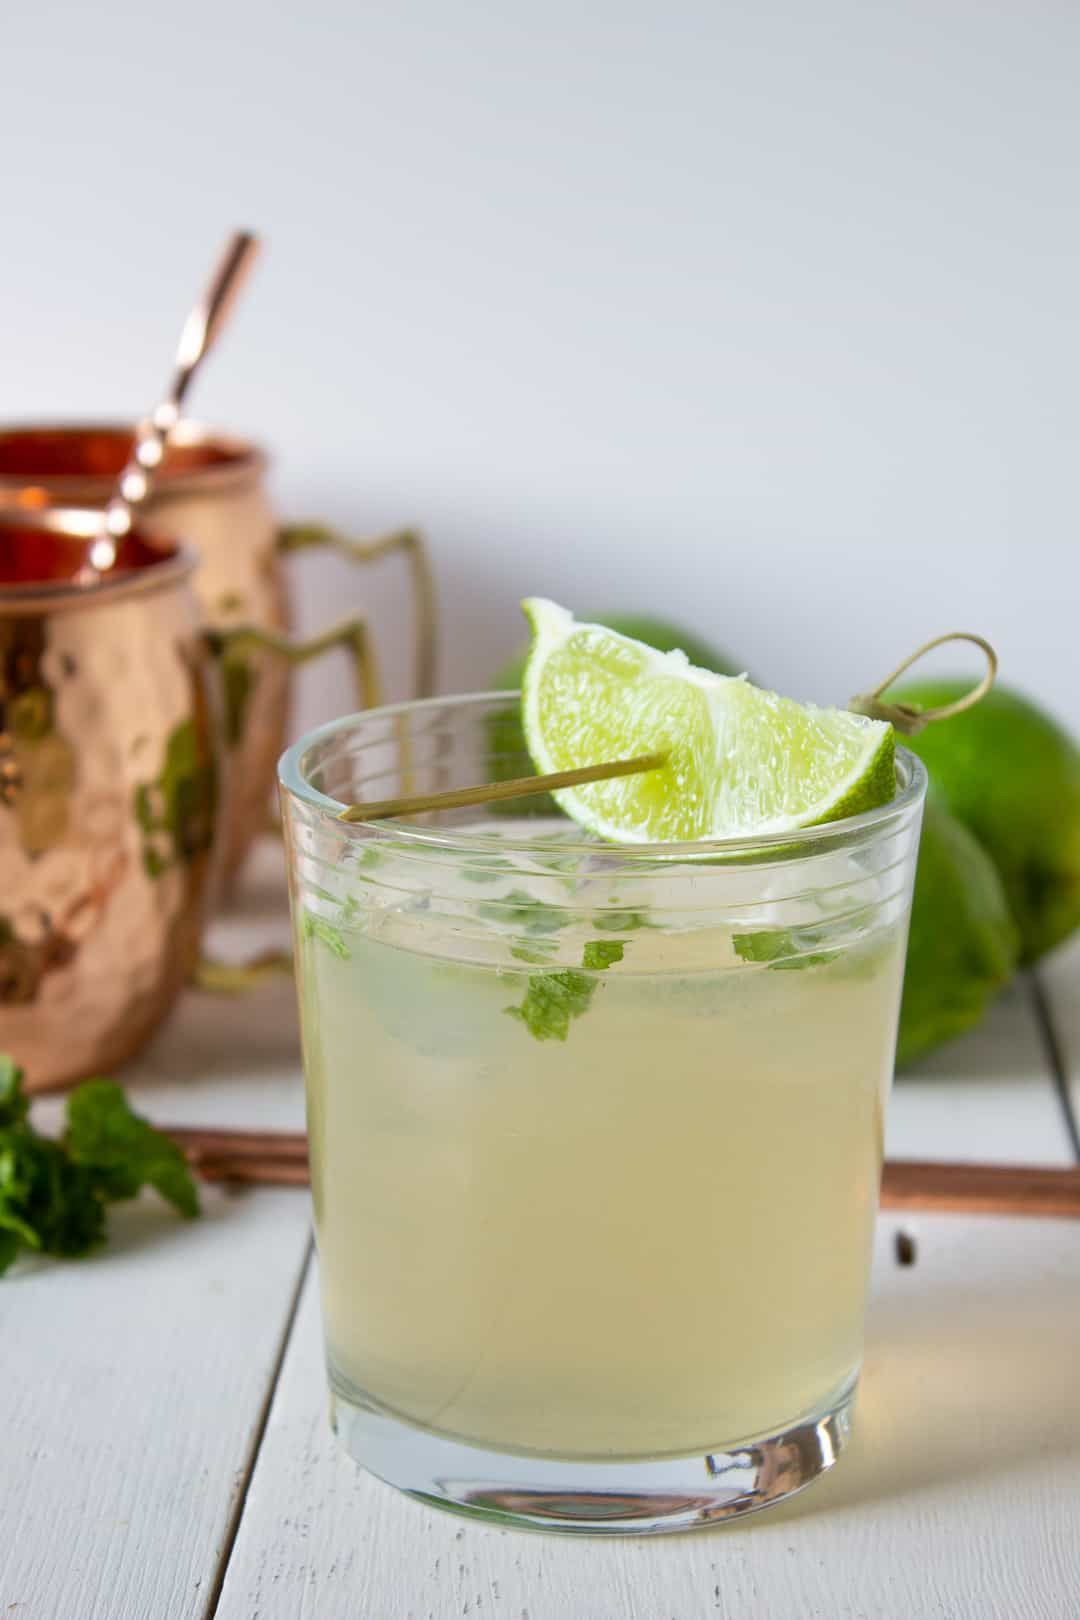 Moscow Mule Recipe Ginger Ale Drinks Ginger Ale Cocktail Vodka Lime